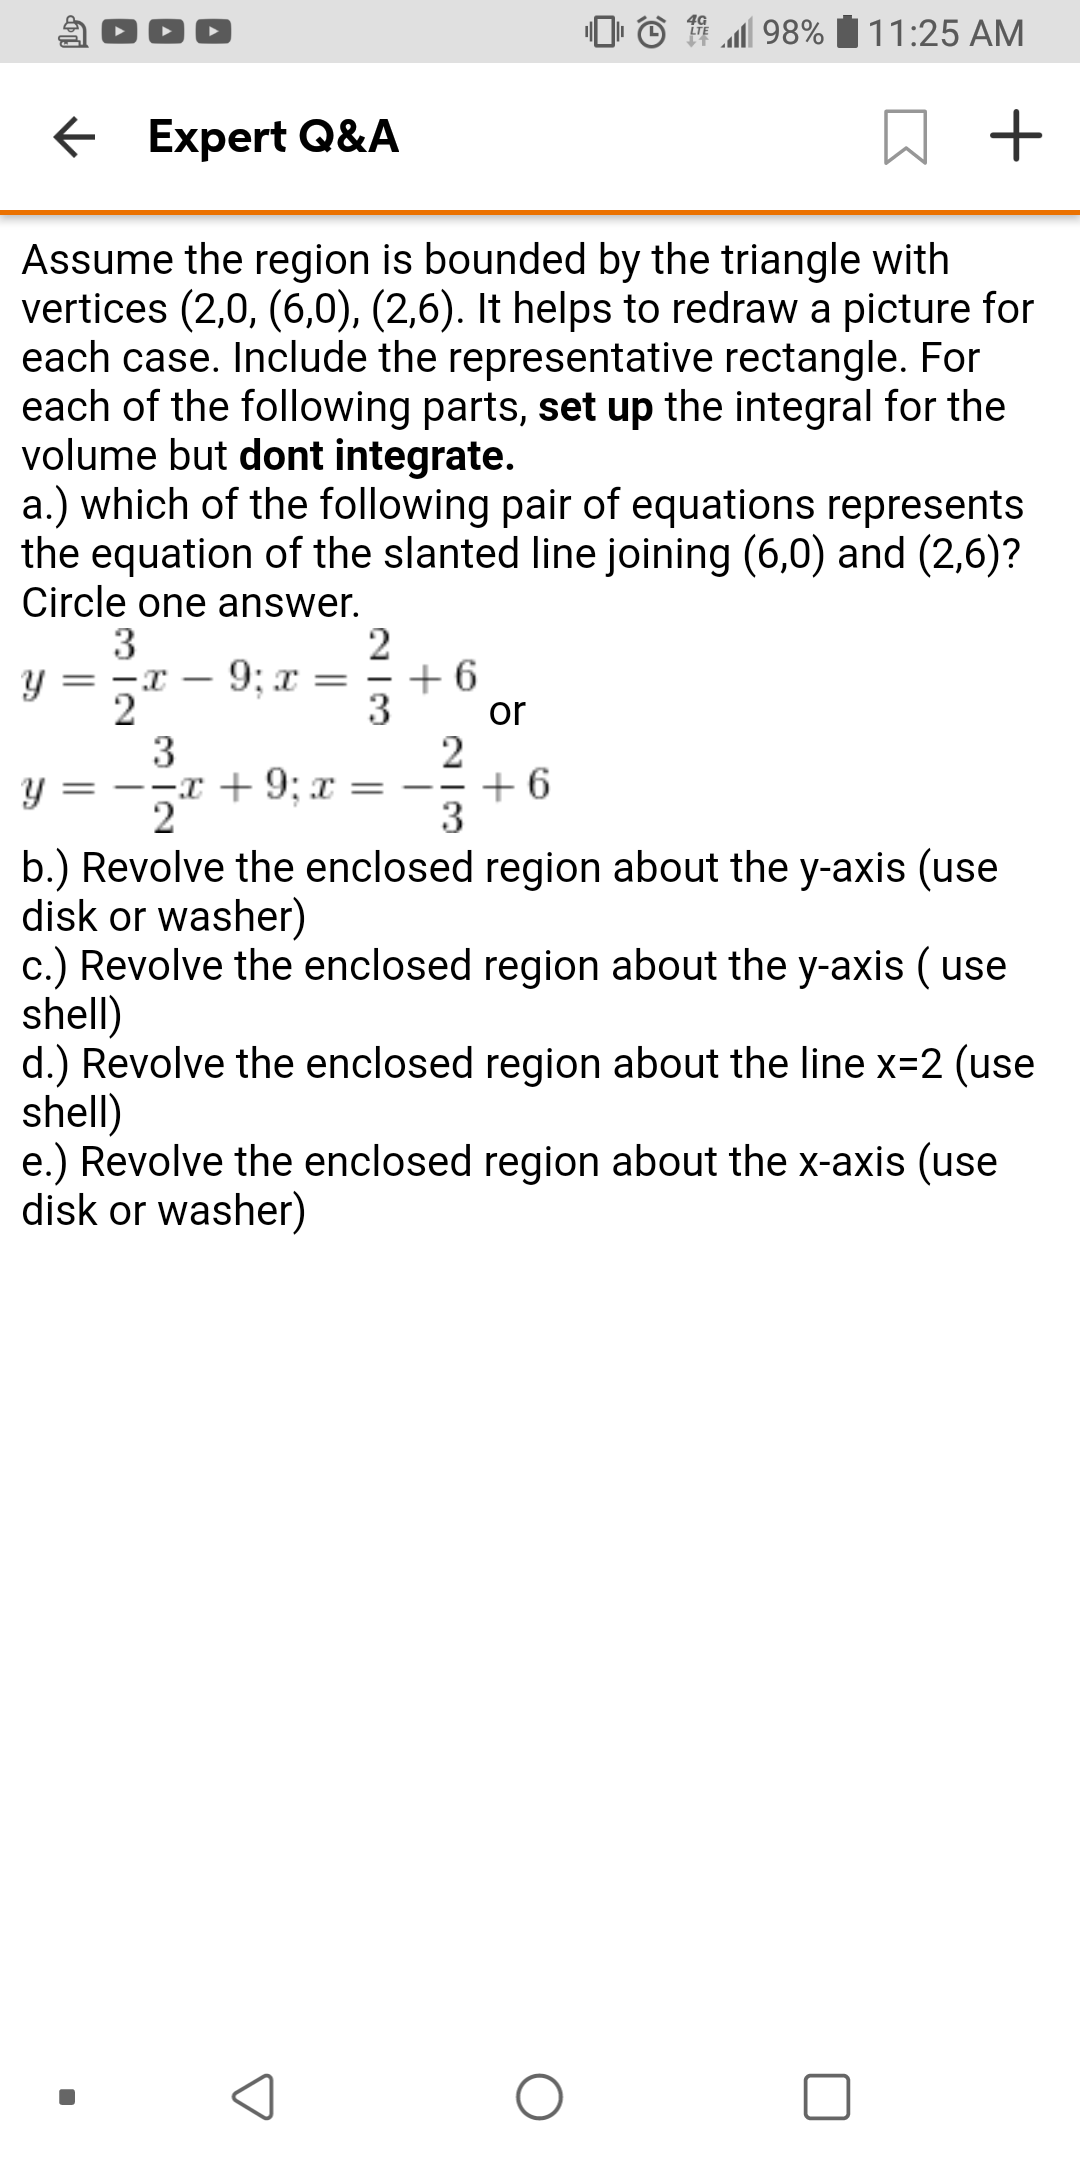 98% 11:25 AM Expert Q&A Assume the region is bounded by the triangle with vertices (2,0, (6,0), (2,6). It helps to redraw a picture for each case. Include the representative rectangle. For each of the following parts, set up the integral for the volume but dont integrate. a.) which of the following pair of equations represents the equation of the slanted line joining (6,0) and (2,6)? Circle one answer. 3 y = 2 6 3 2 6 9; x - 2 or 3 =--x + 9; x = y 2 b.) Revolve the enclosed region about the y-axis (use disk or washer) c.) Revolve the enclosed region about the y-axis ( use shell) d.) Revolve the enclosed region about the line x-2 (use shell) e.) Revolve the enclosed region about the x-axis (use disk or washer)